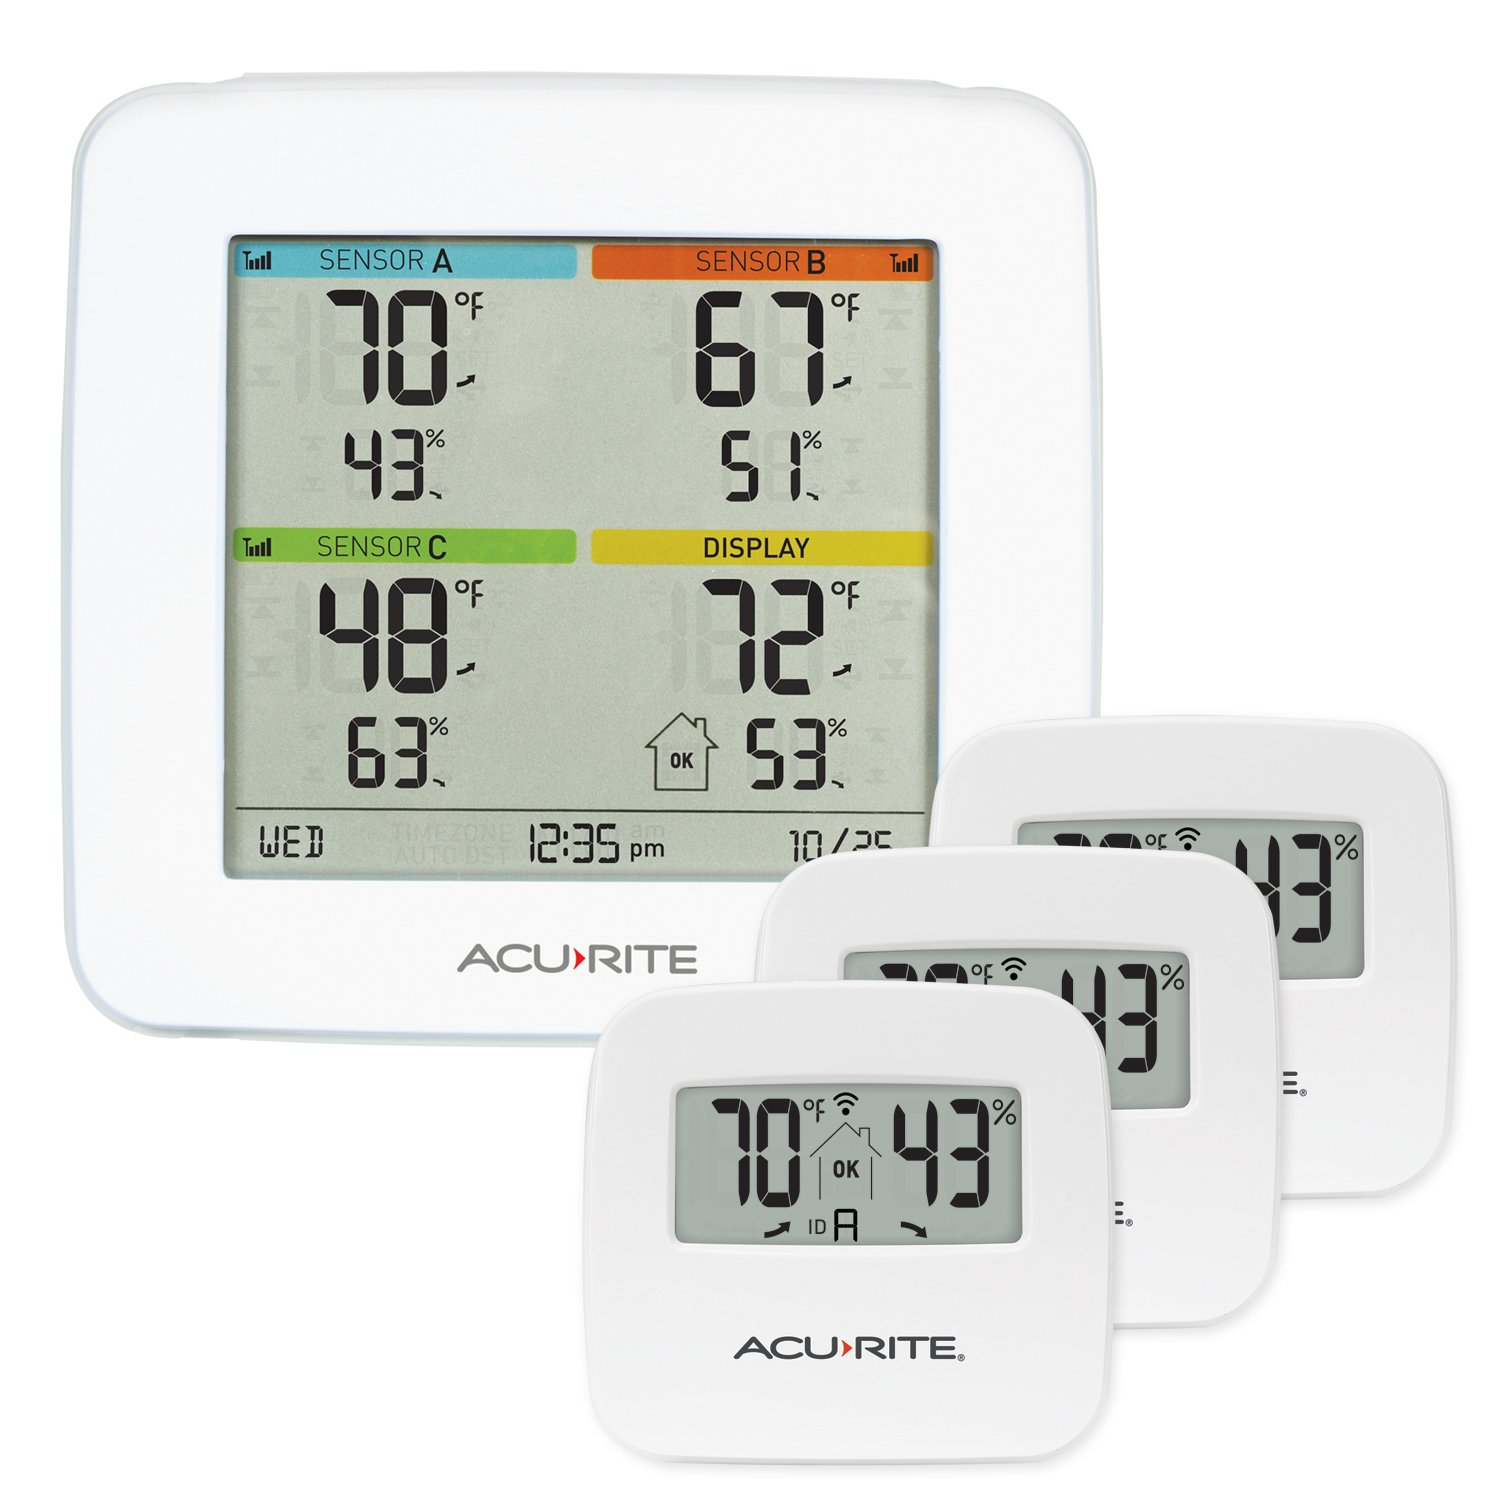 AcuRite 01095M Indoor Temperature & Humidity Station with 3 Sensors by AcuRite